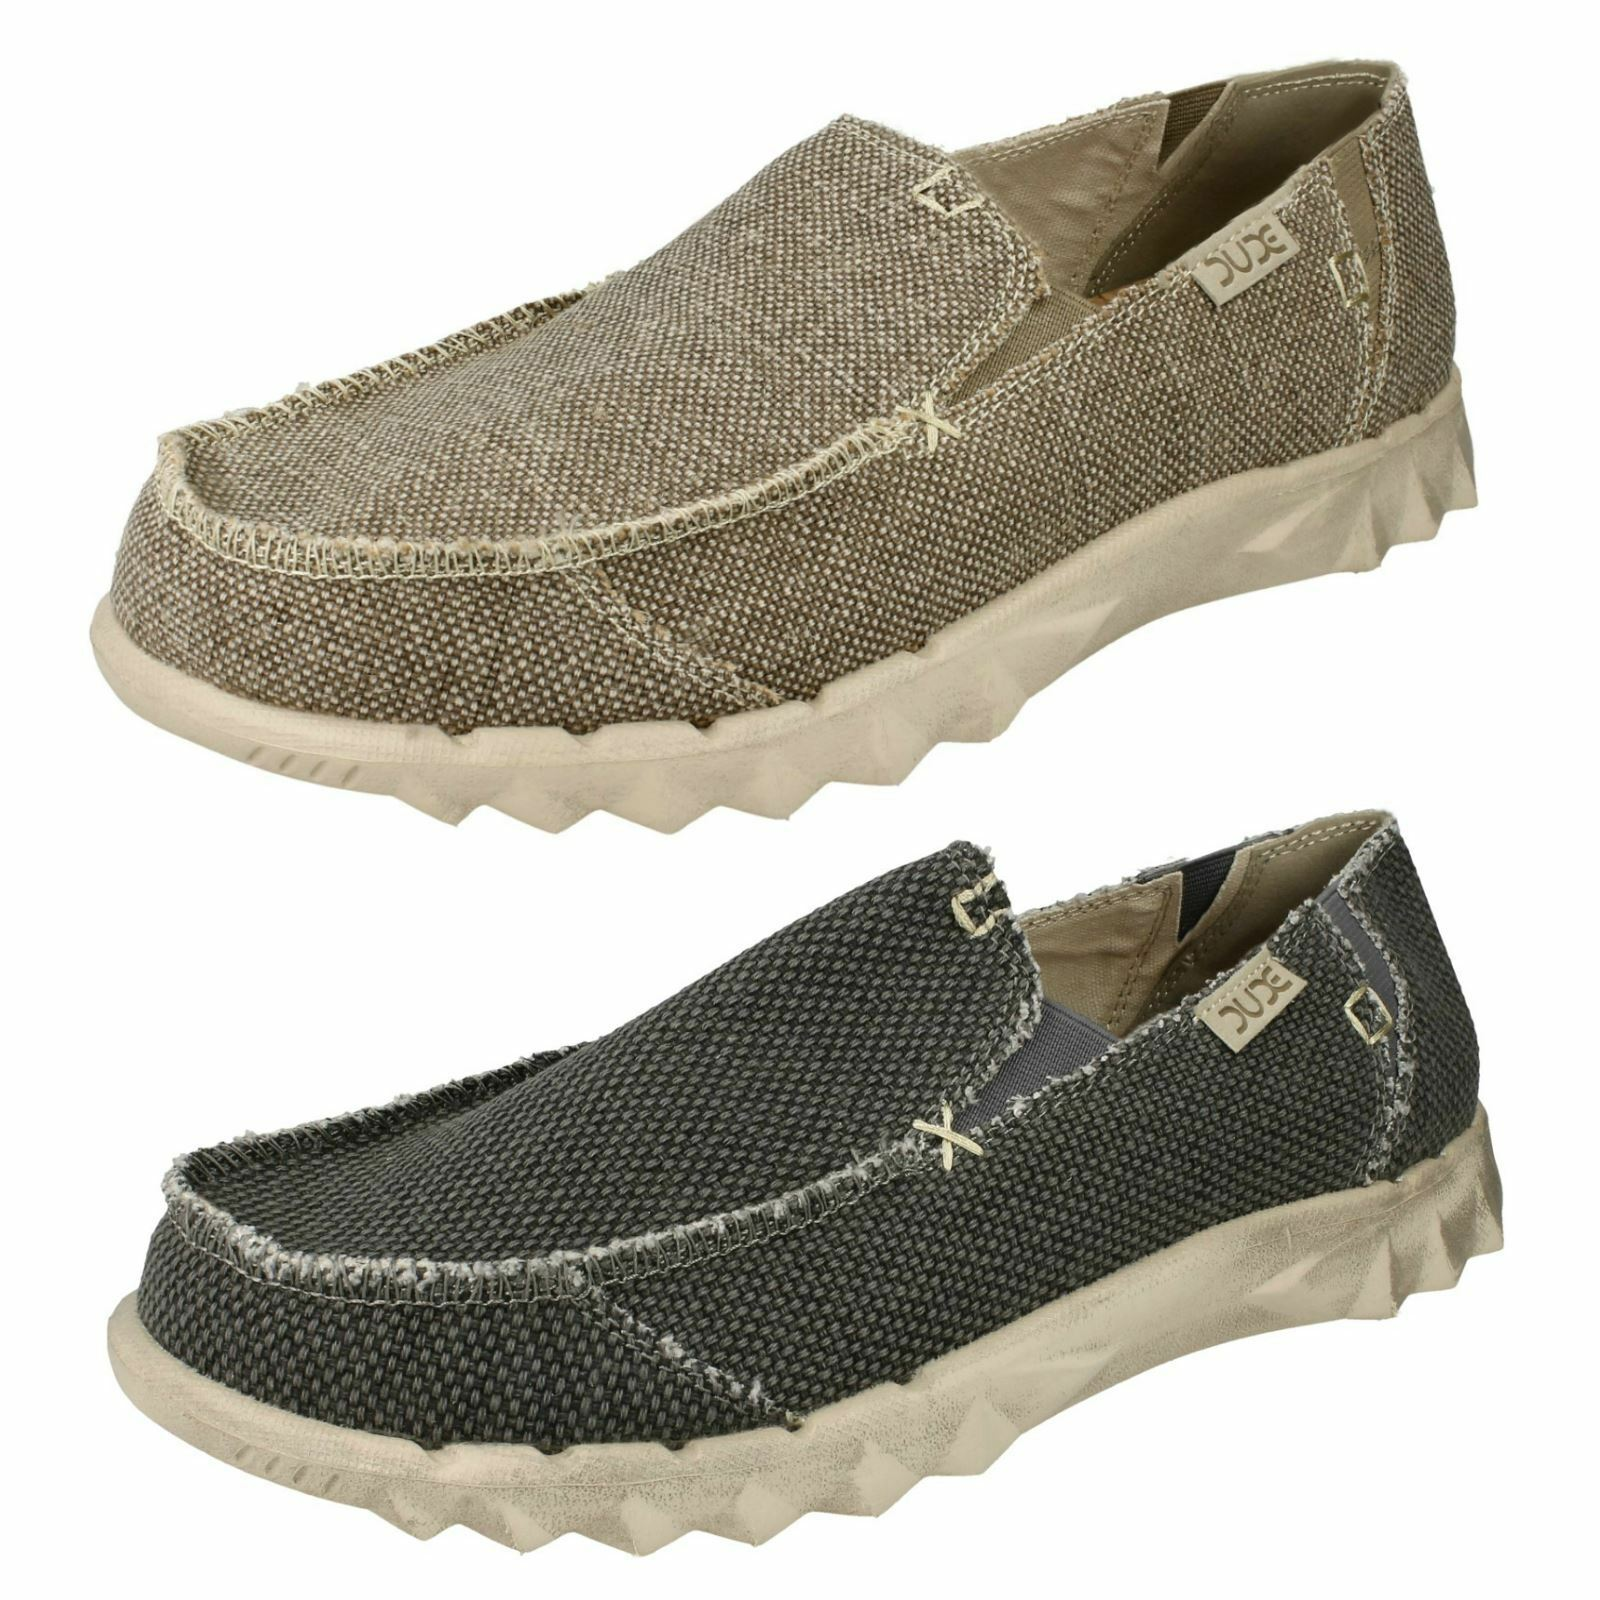 Hey Dude Mens Casual Canvas Shoes - Farty Braided